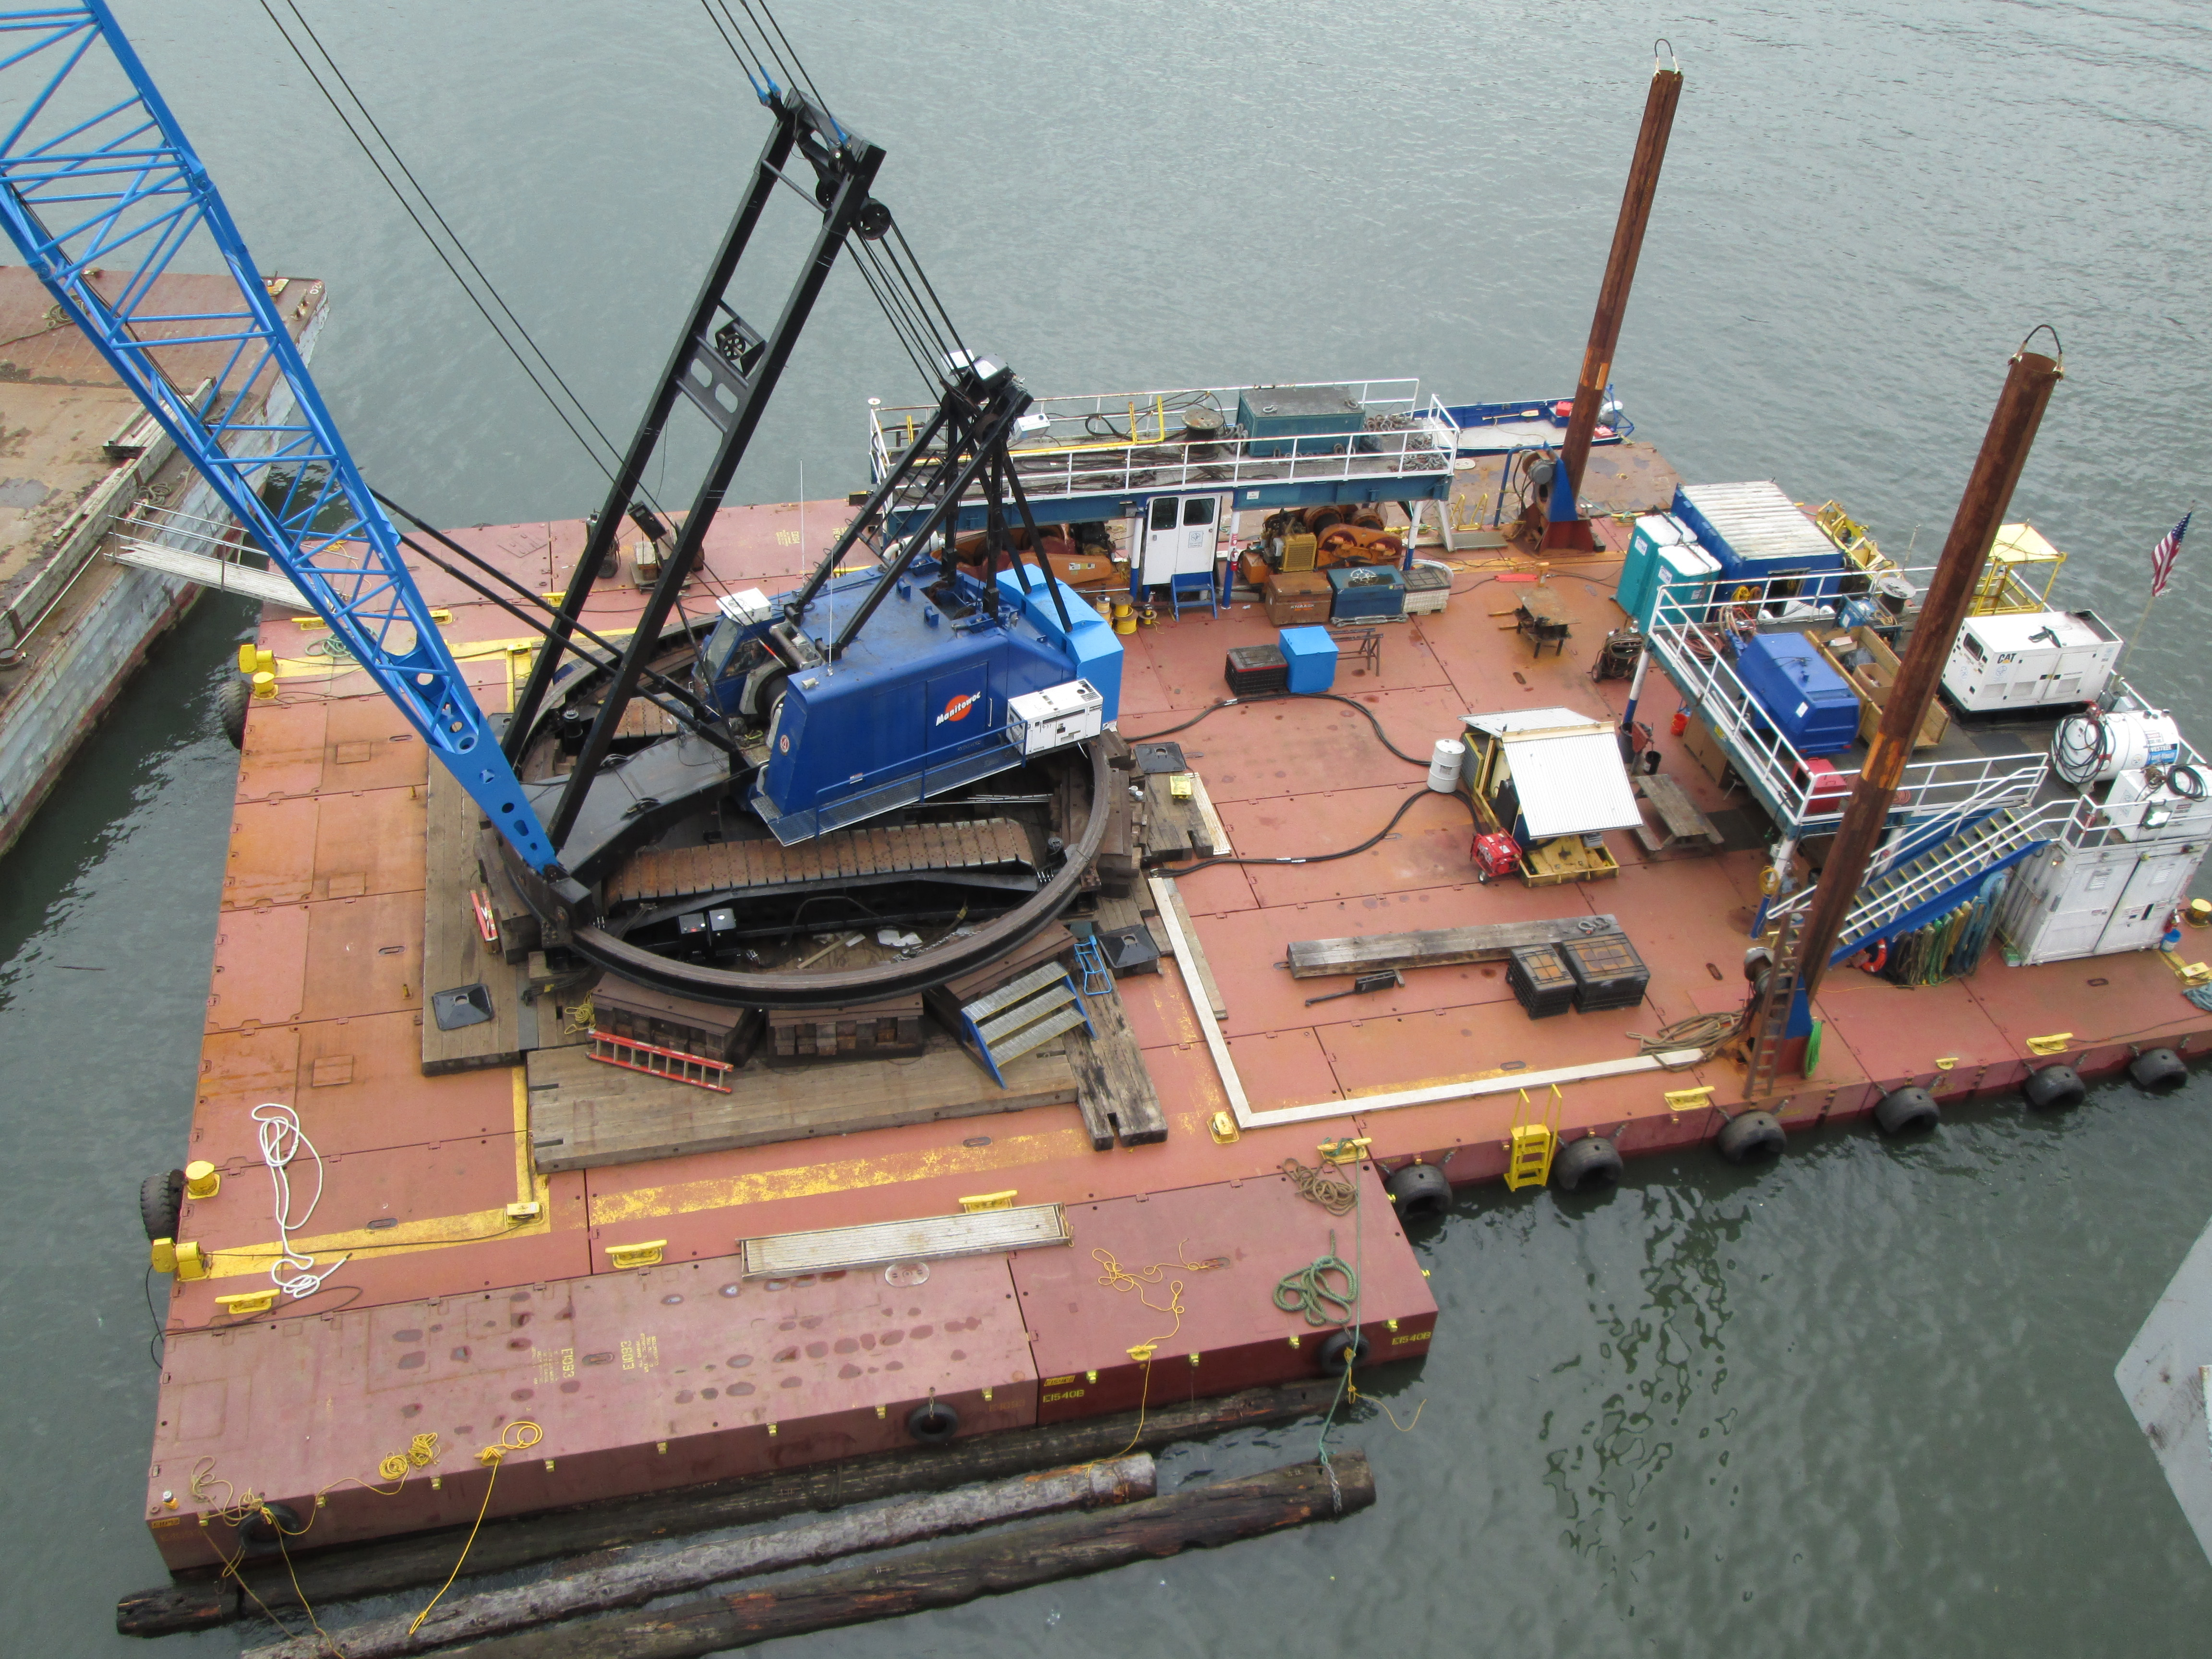 Derrick Barges, Work Barges & Tugs